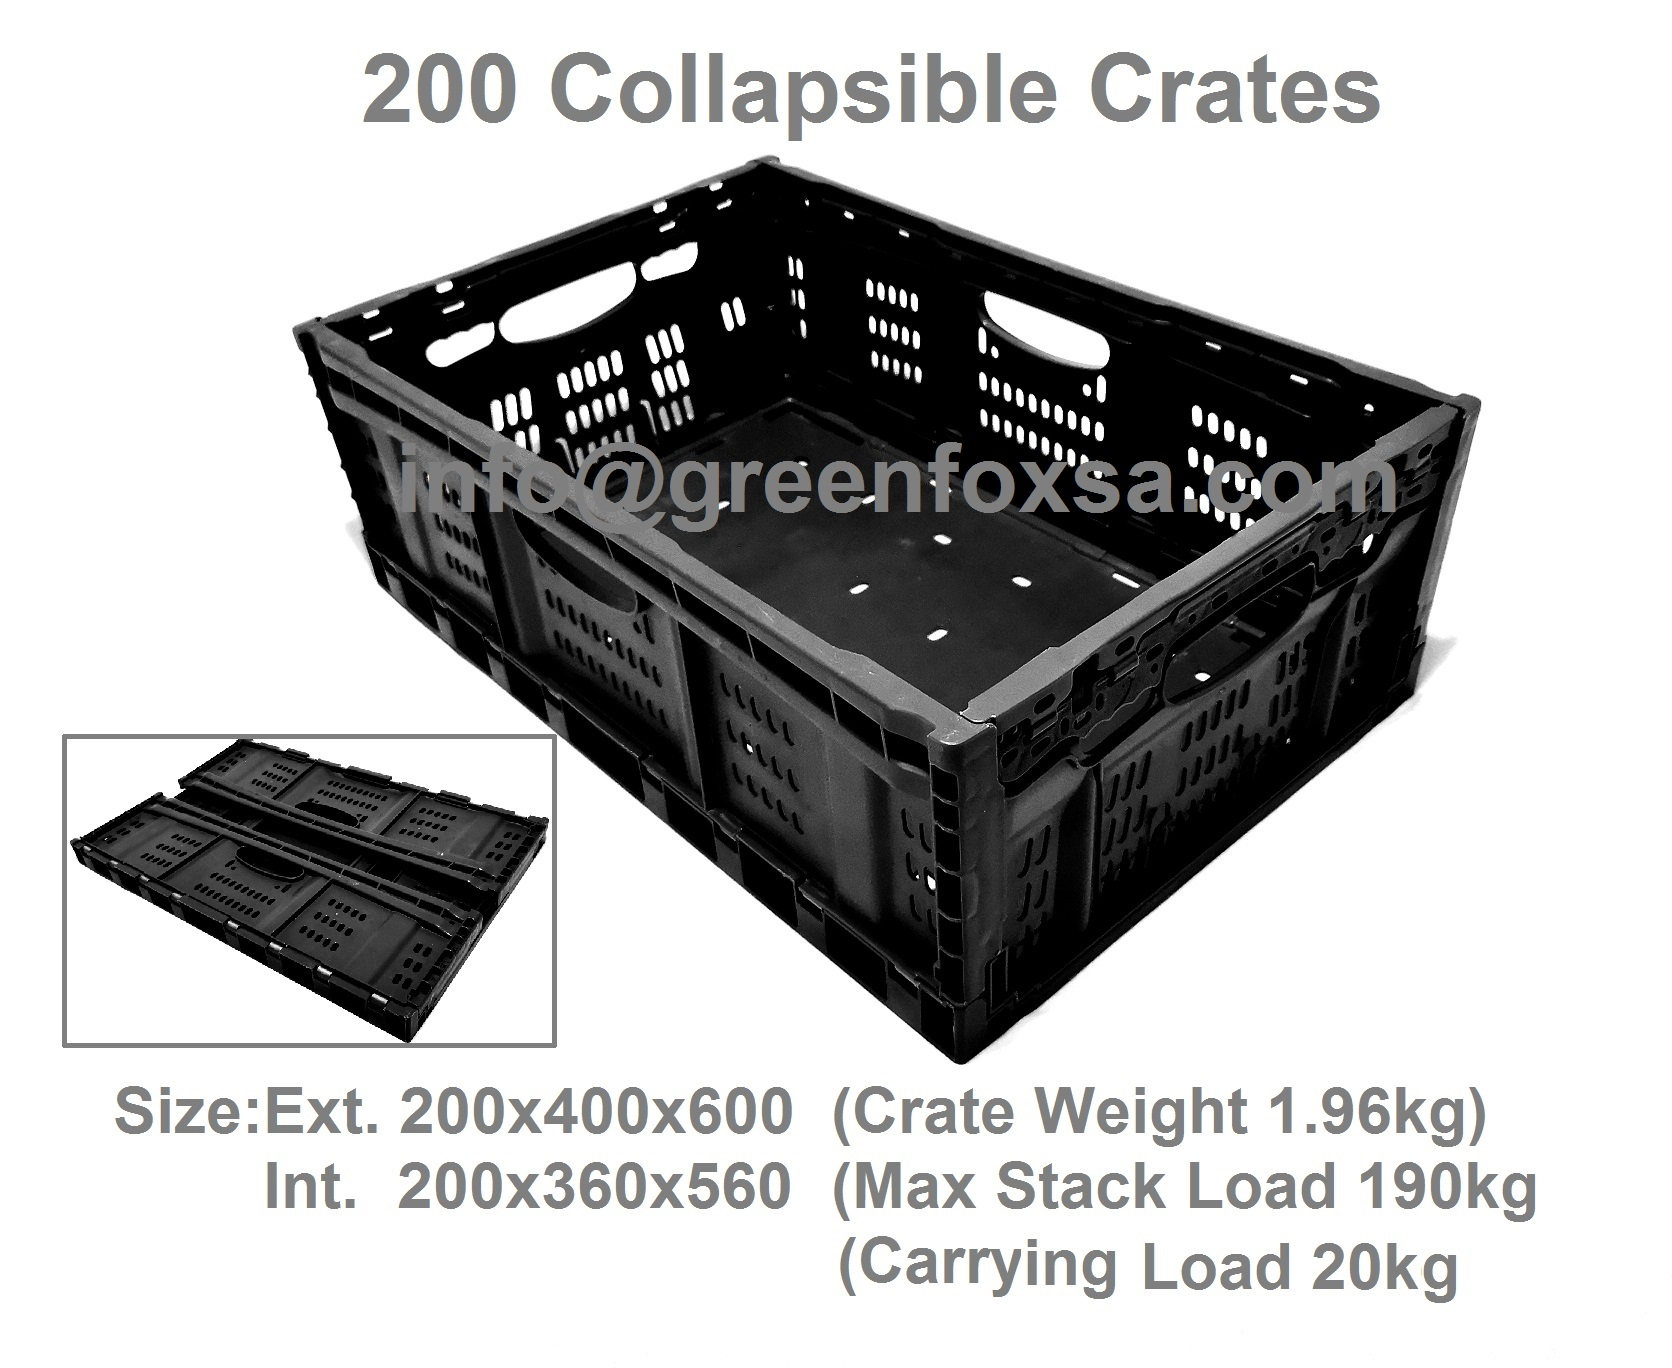 farming-fruit-crates-collapsible-200-black-plastic-crates-